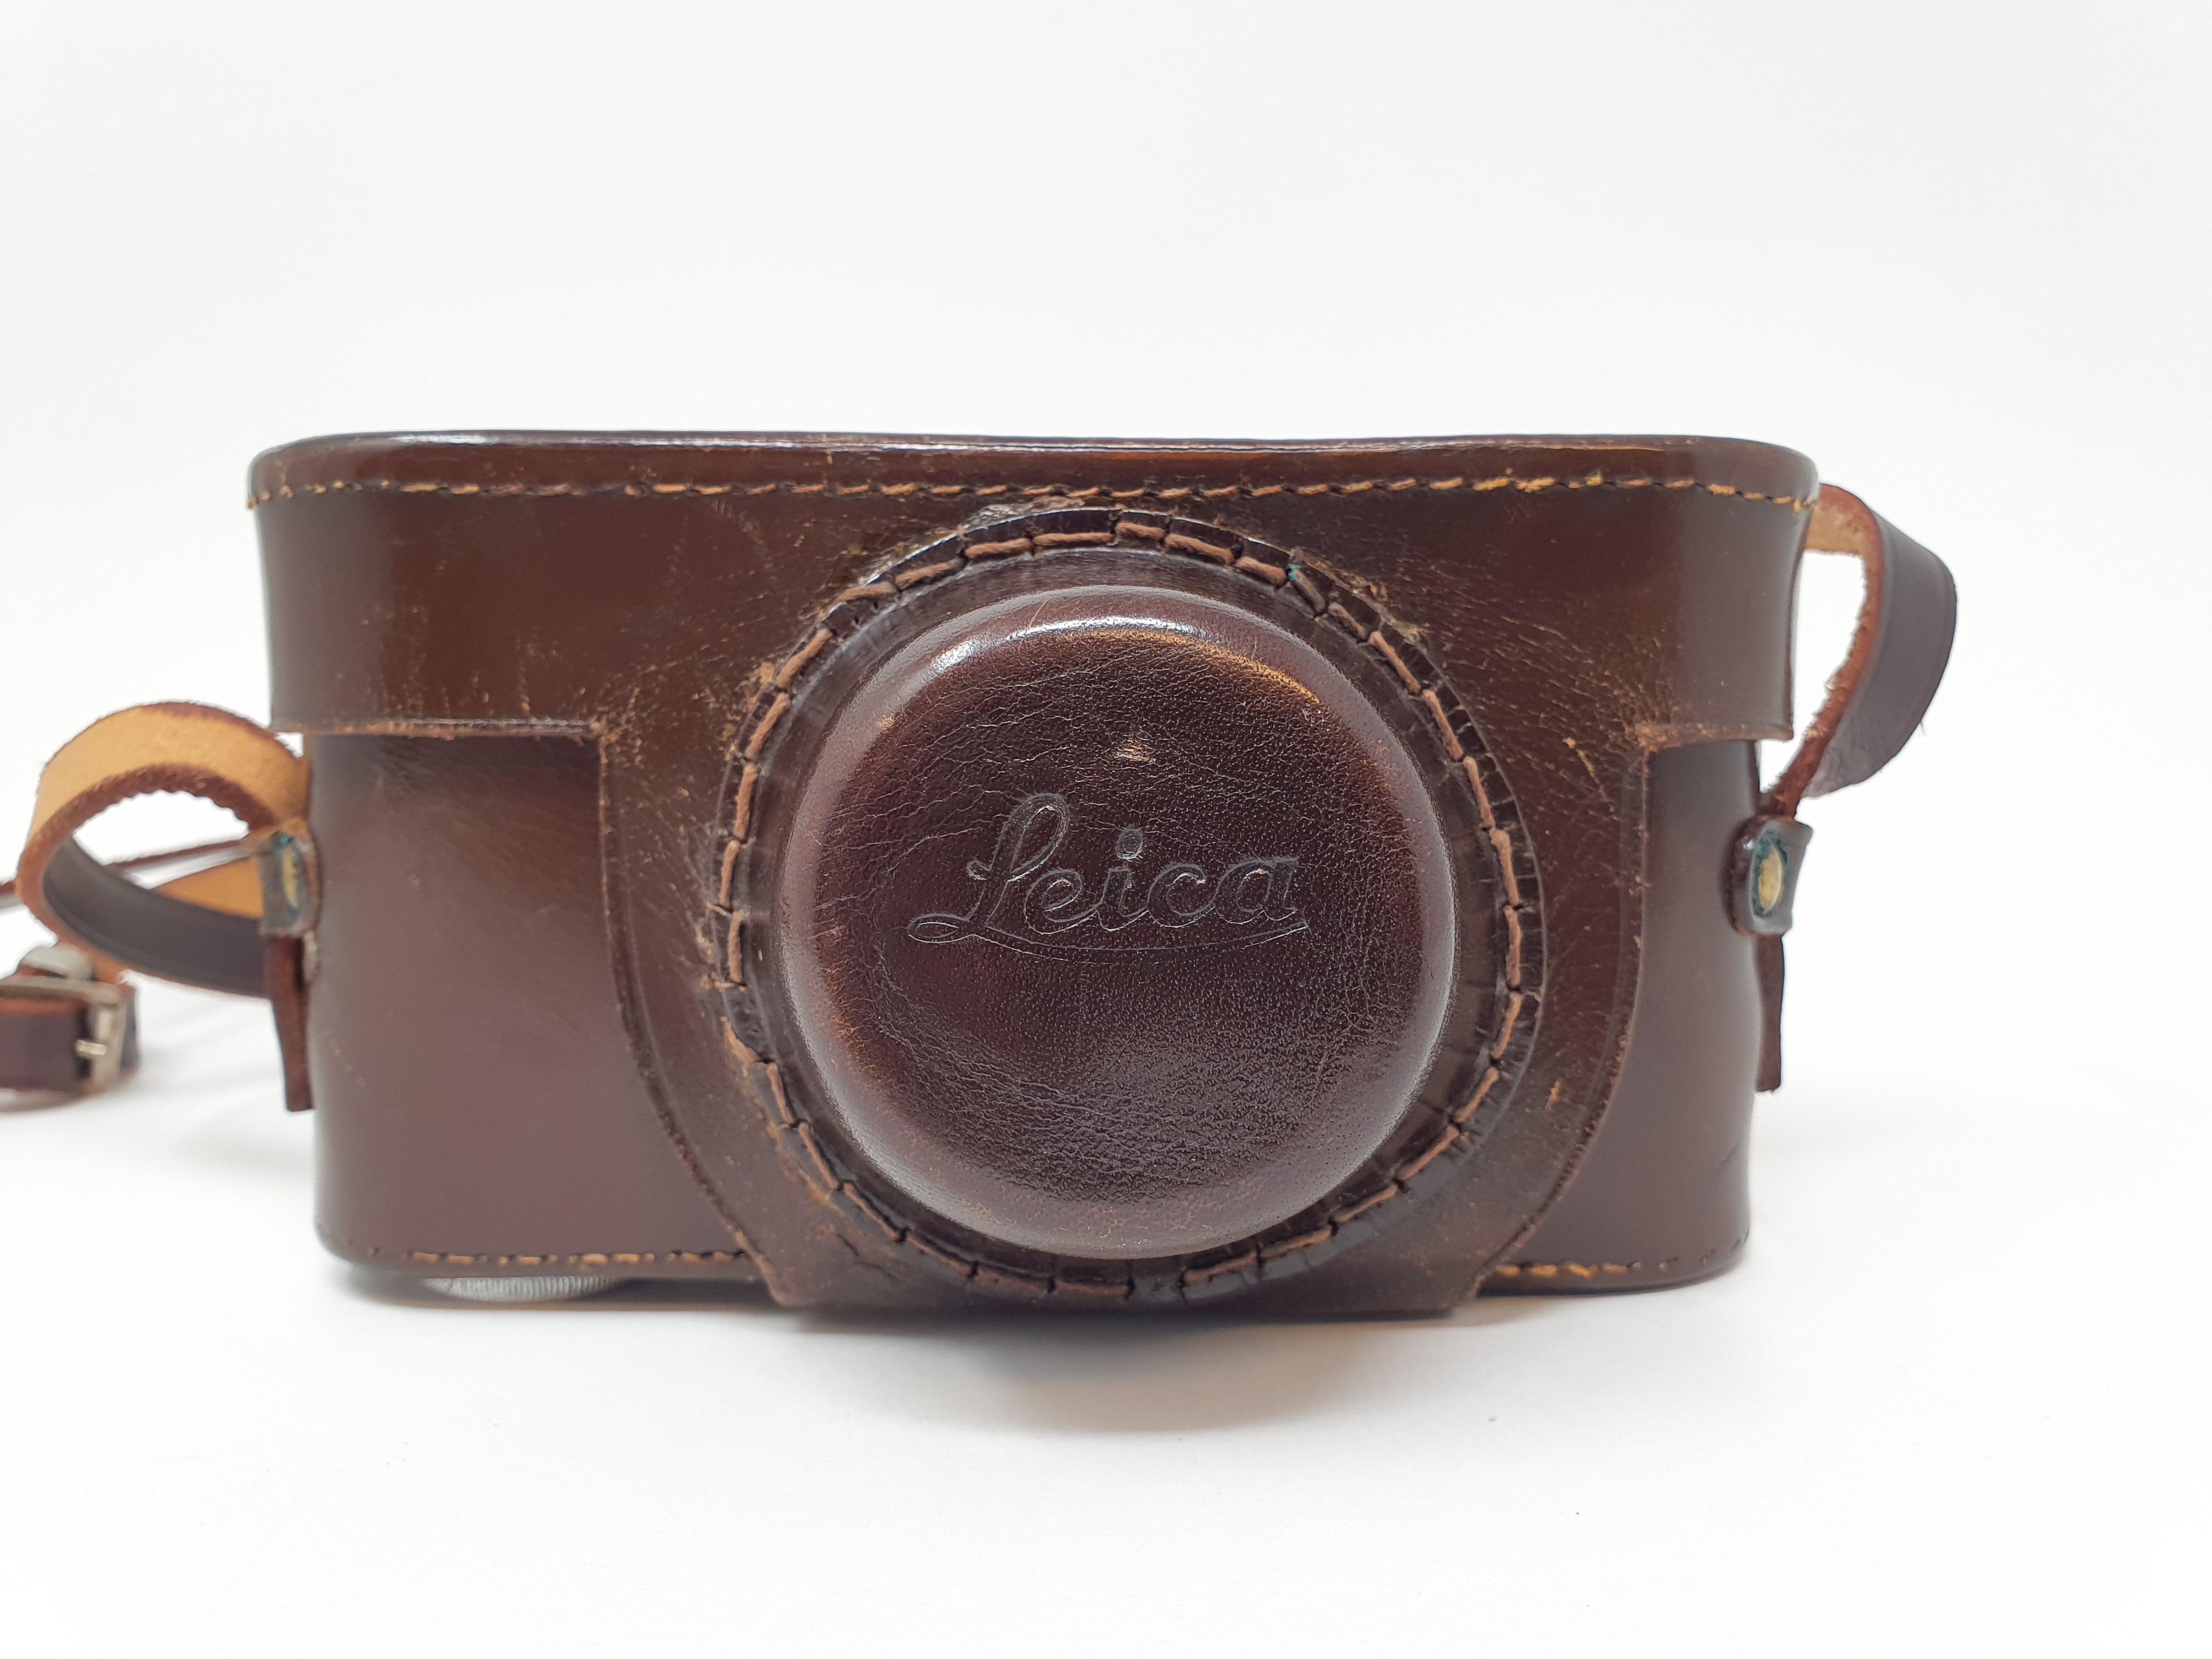 A Leica IIIa camera, serial number 324178, with leather outer case Provenance: Part of a vast single - Image 4 of 4